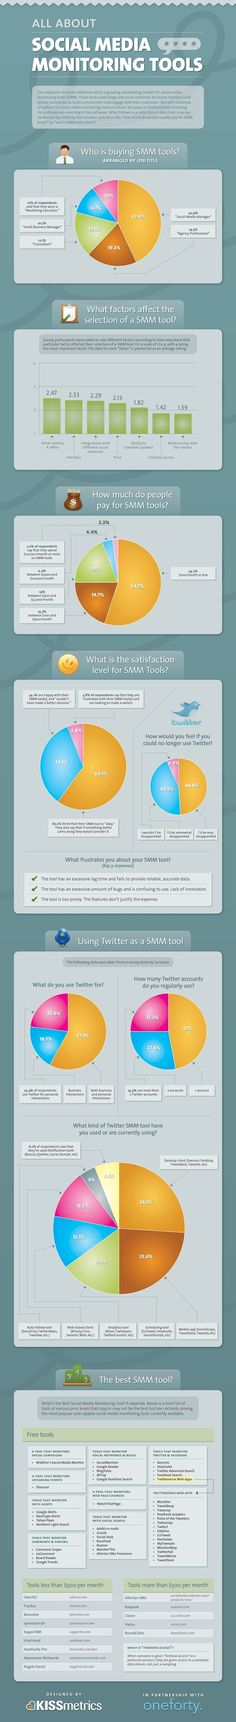 Social Media Monitoring Tools #Infographic